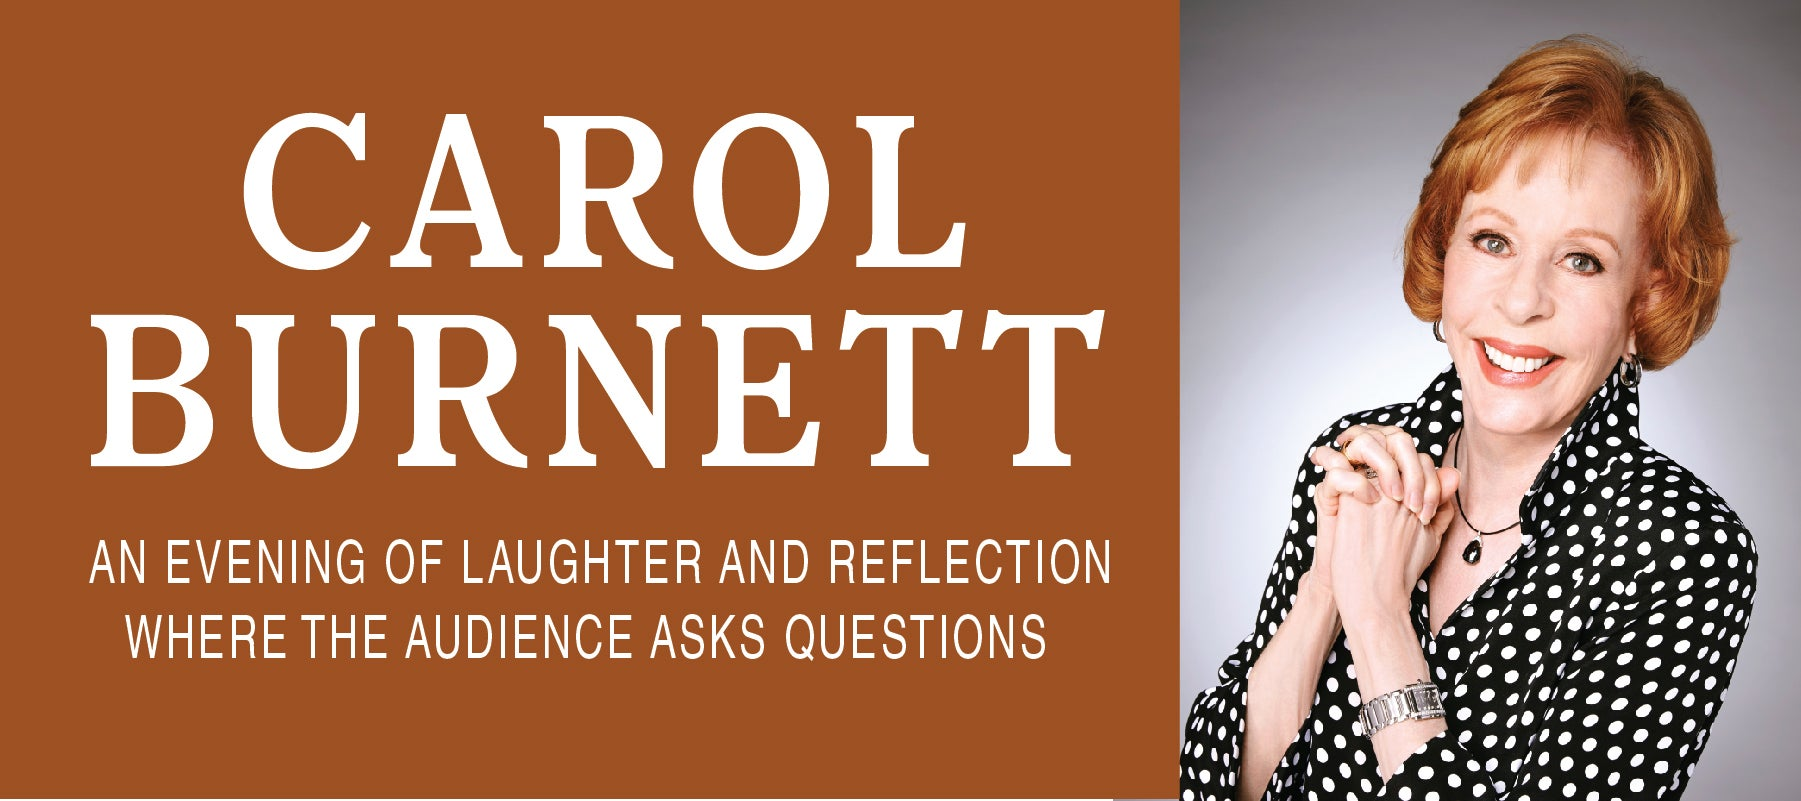 Carol Burnett: An Evening of Laughter and Reflection